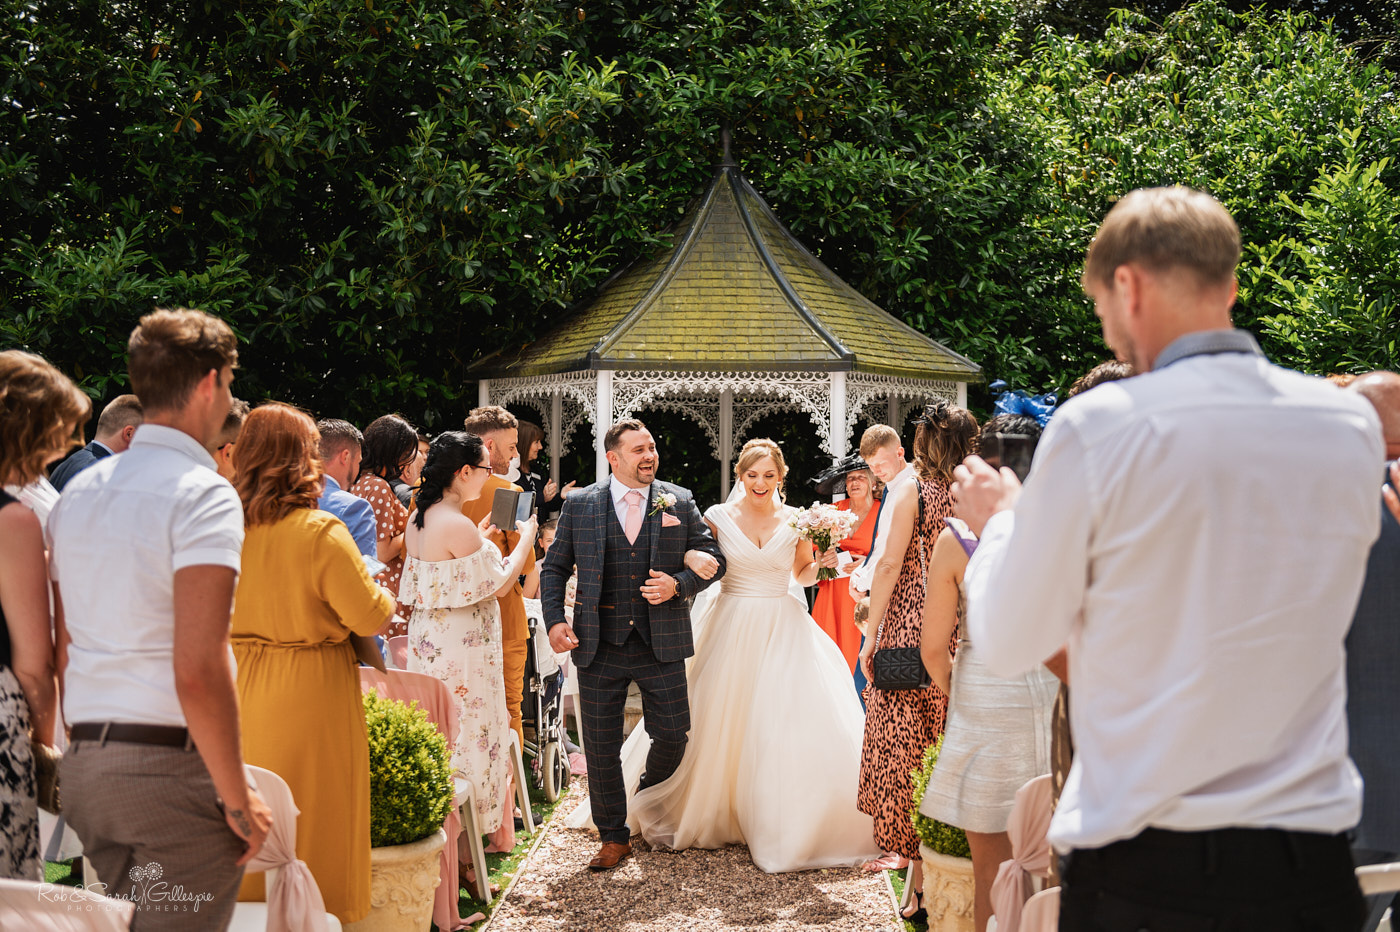 Outdoor civil wedding ceremony at Pendrell Hall in Staffordshire